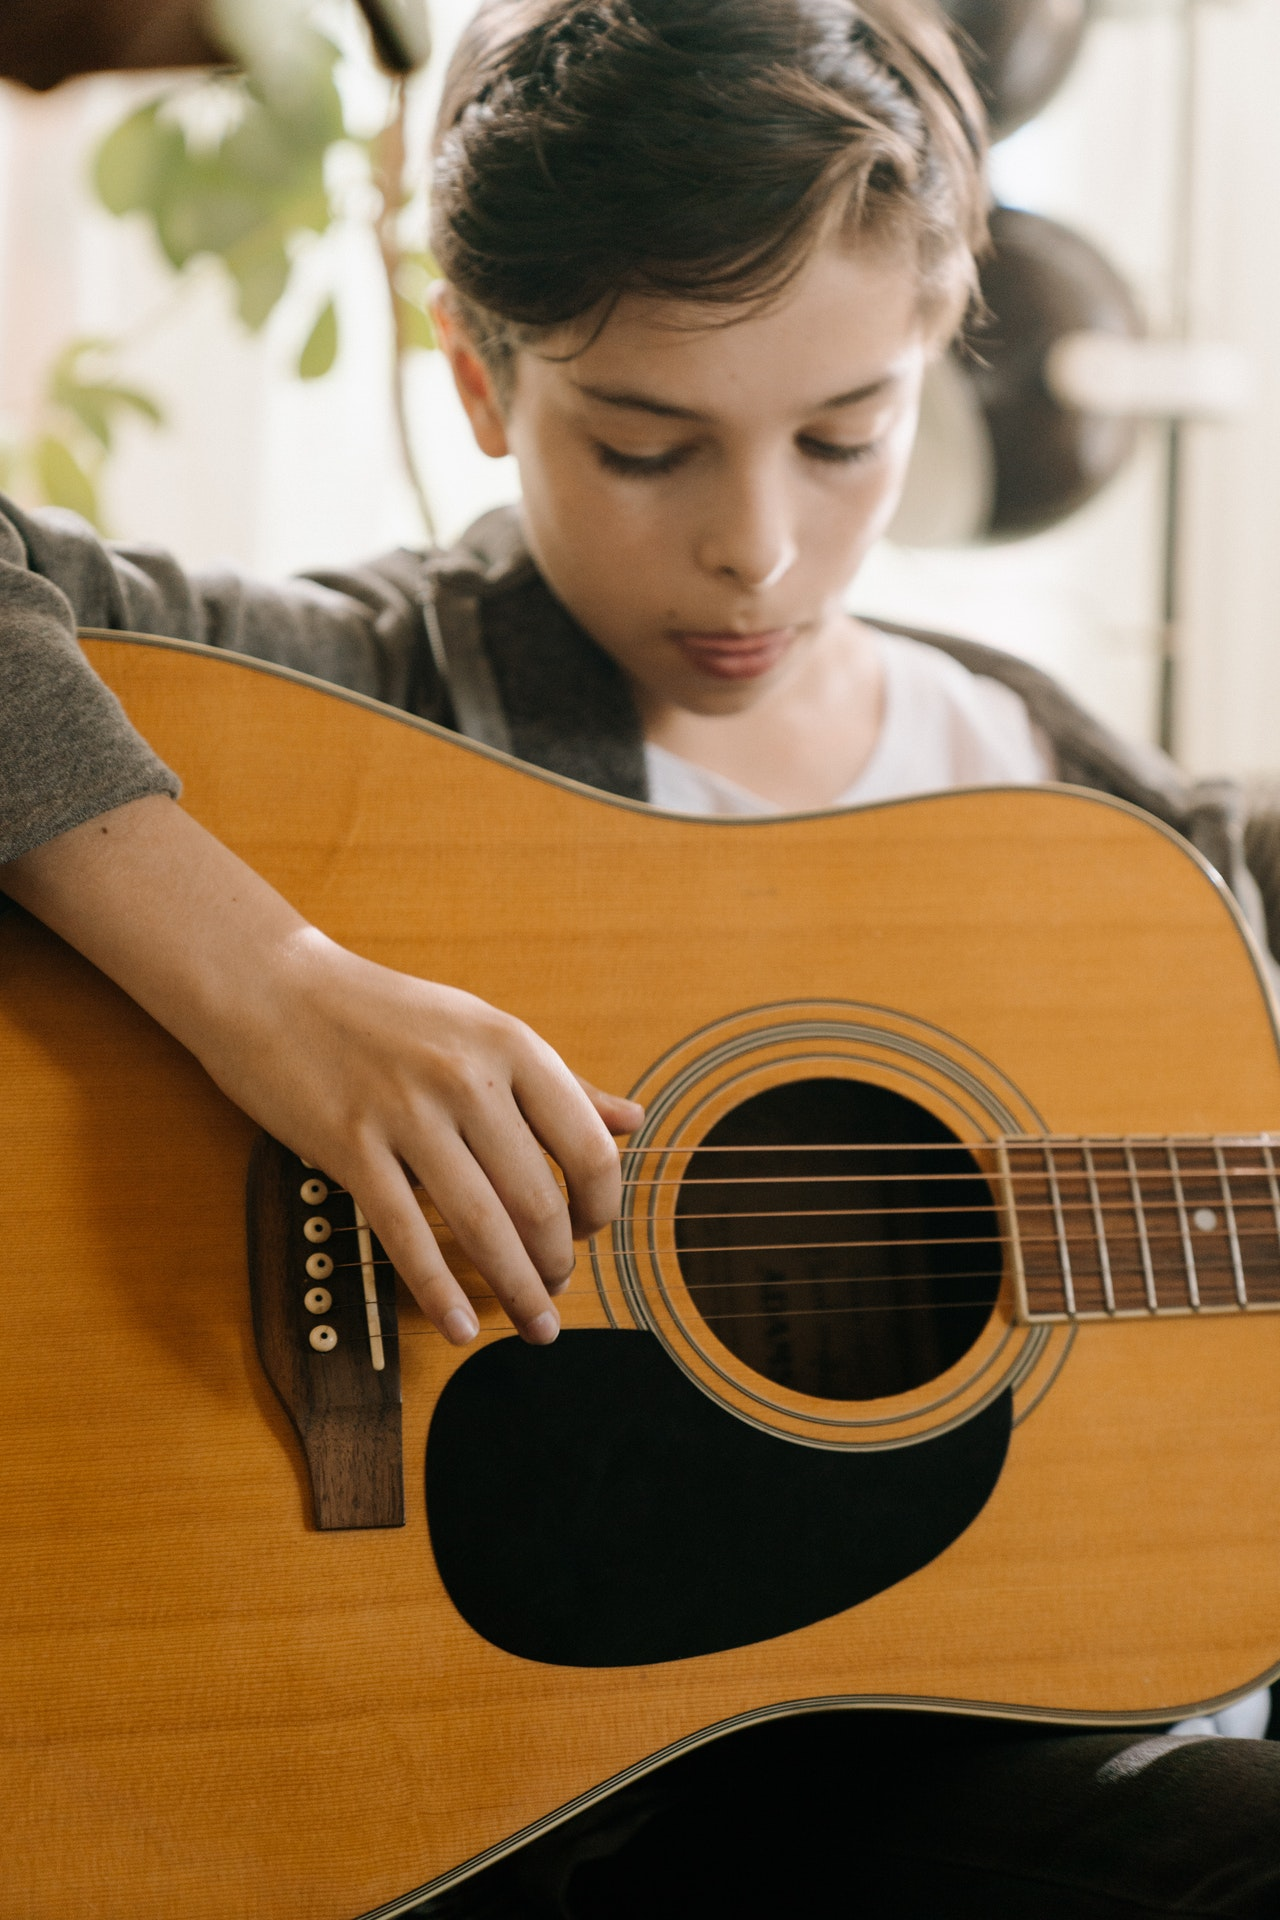 Is Guitar Difficult to Learn?